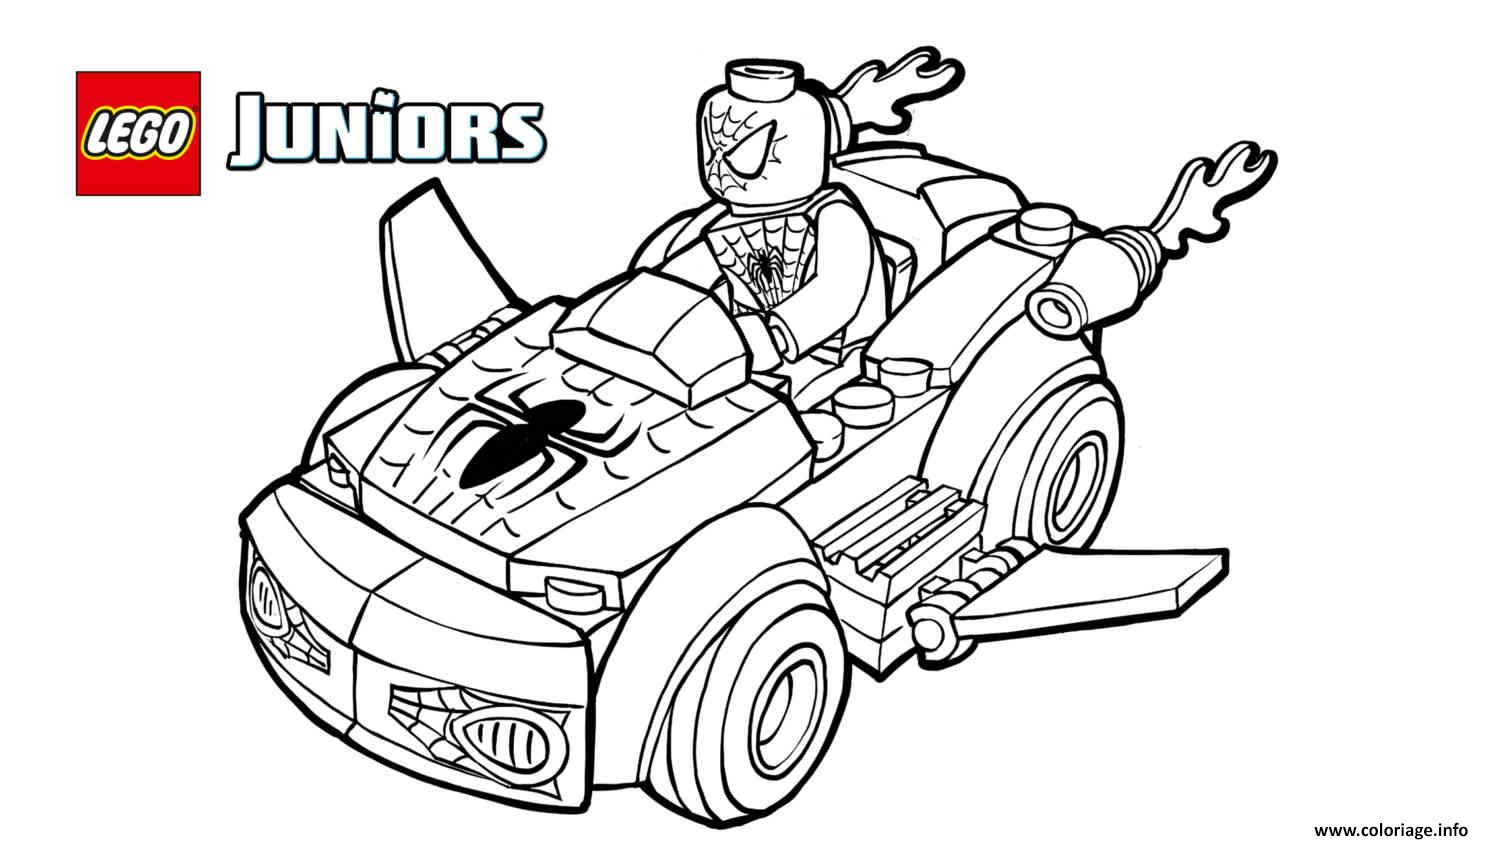 Coloriage lego spiderman 2 voiture lego - Spider man en dessin ...